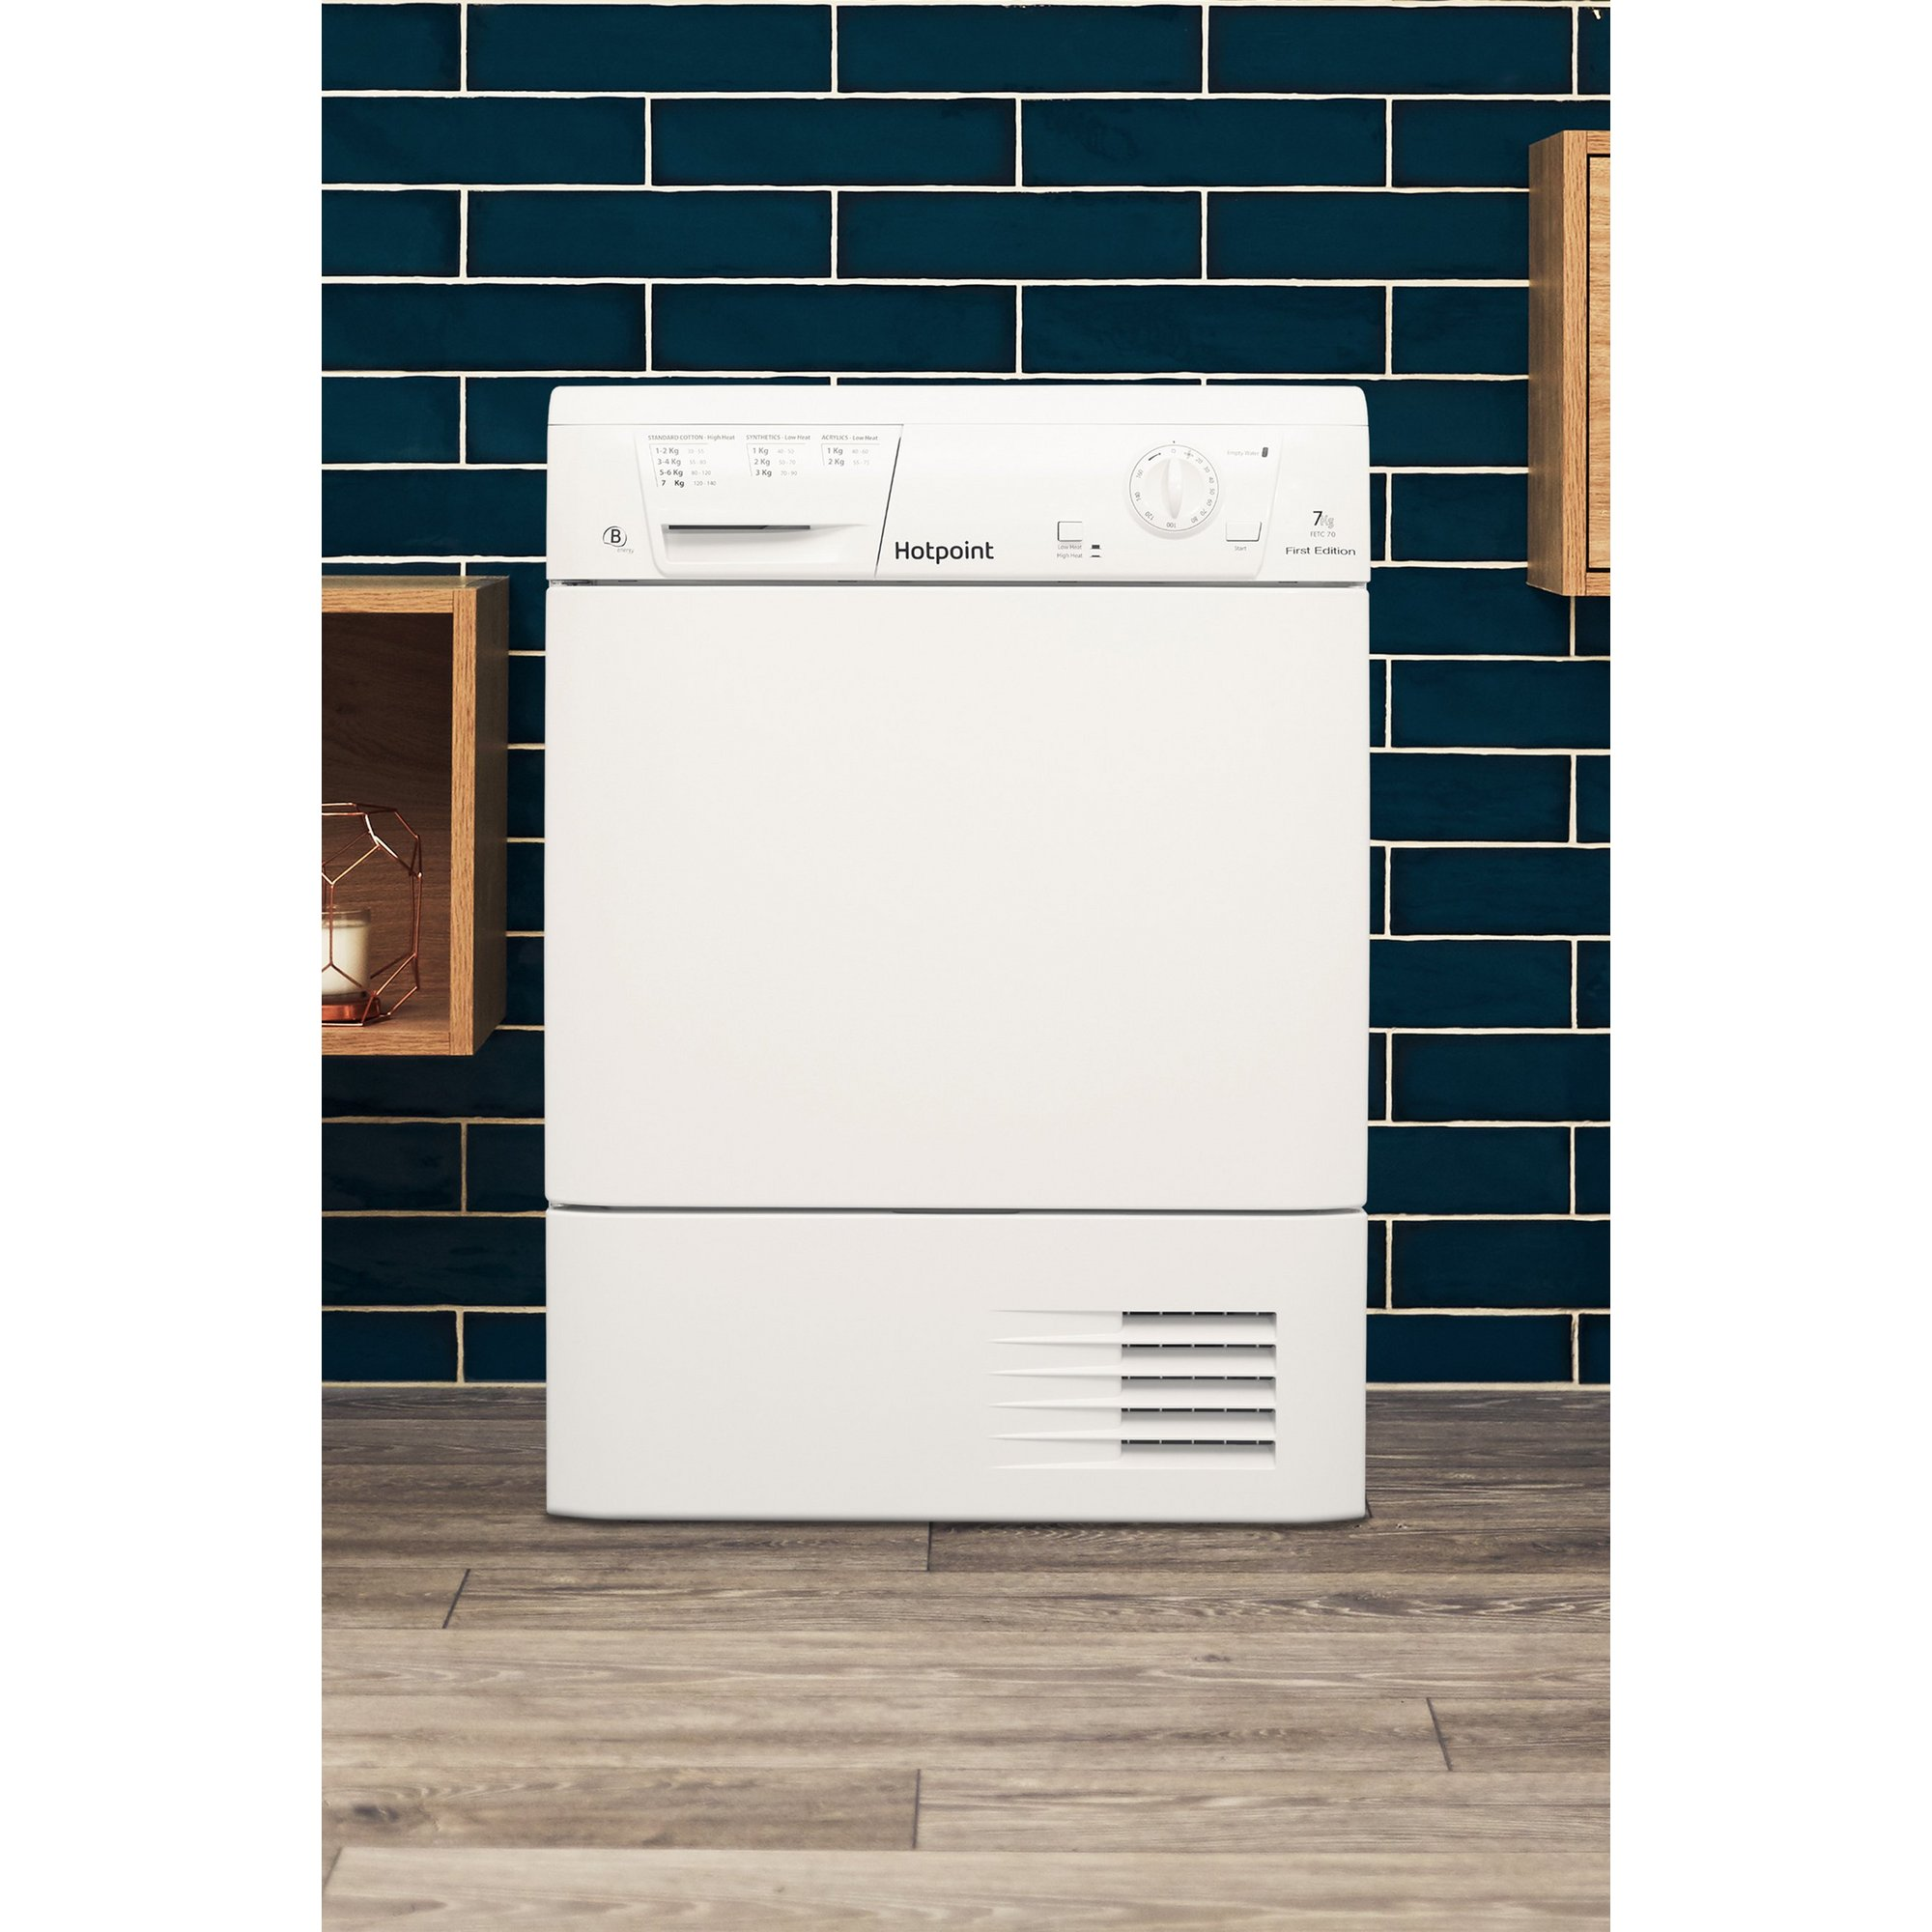 Image of Hotpoint 7kg Condenser Tumble Dryer